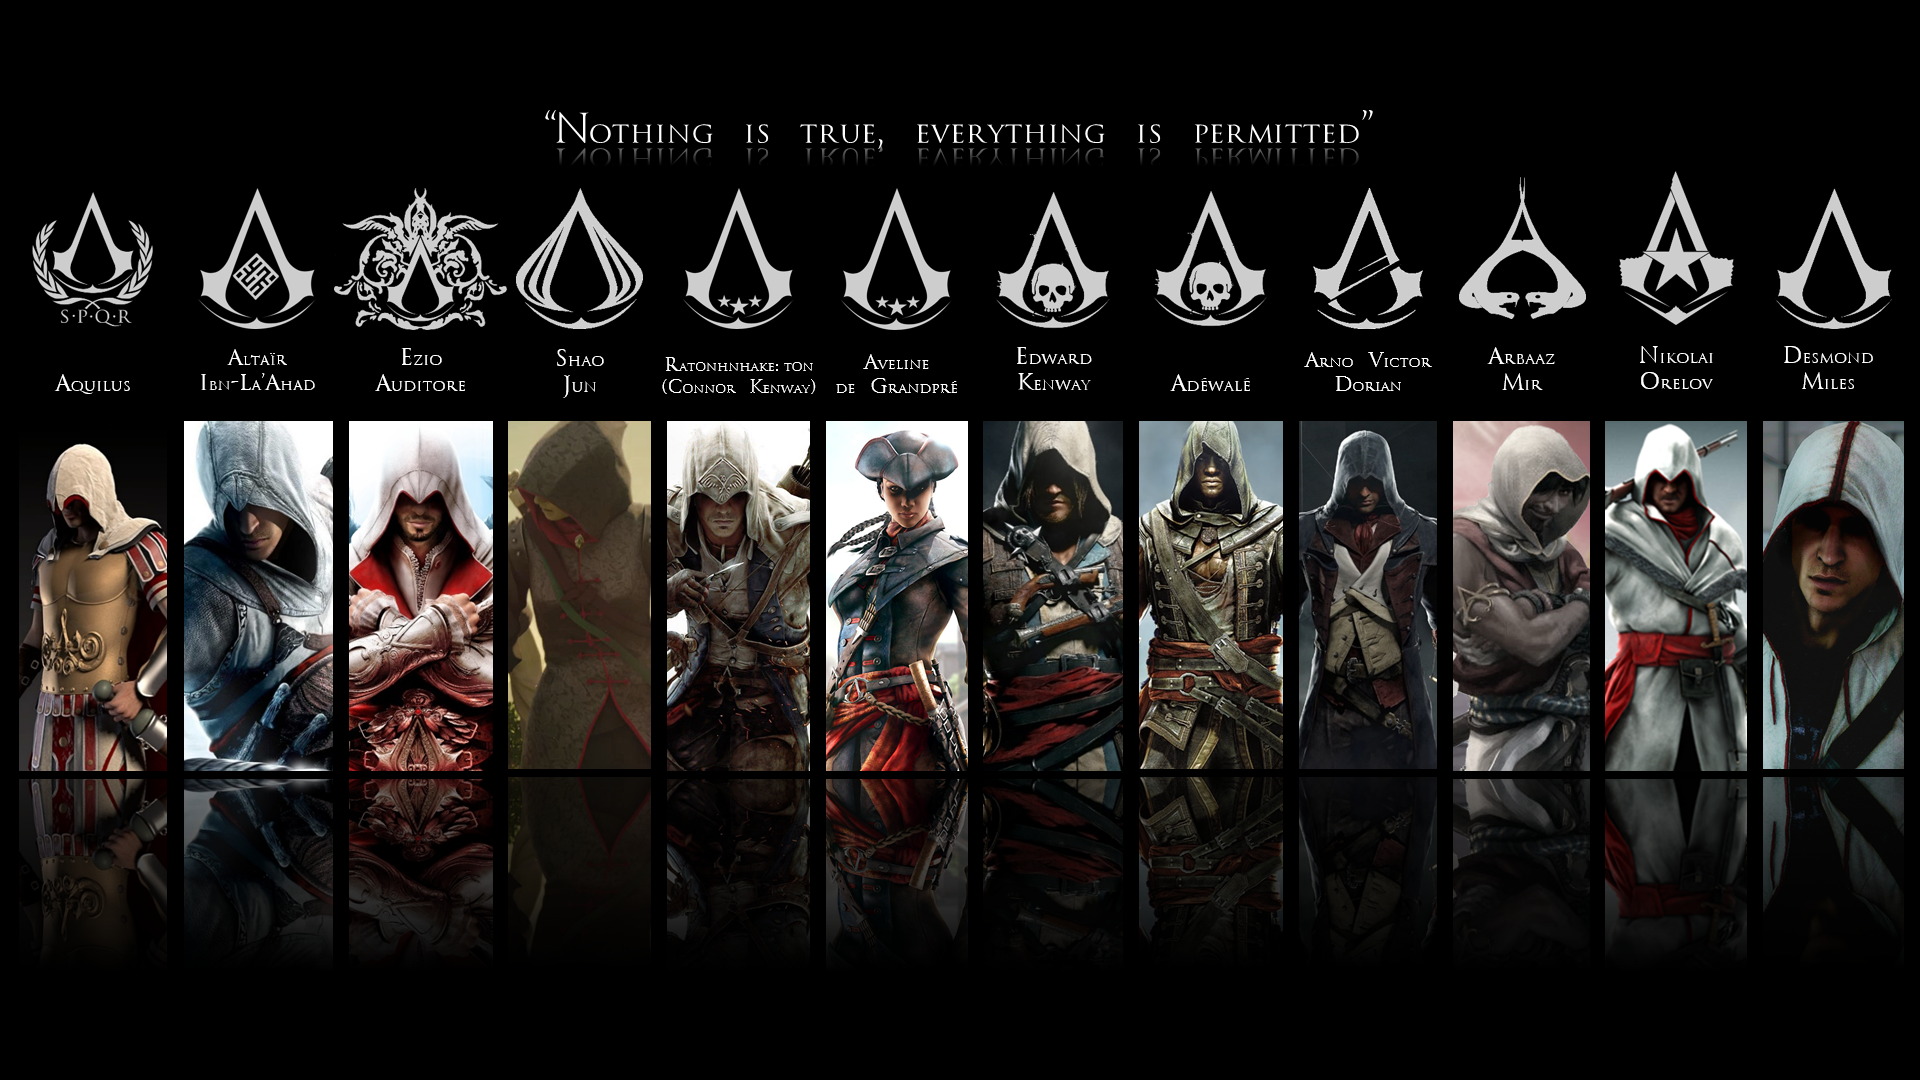 Assassin S Creed Arbaaz Mir Google Pretrazivanje Assassin S